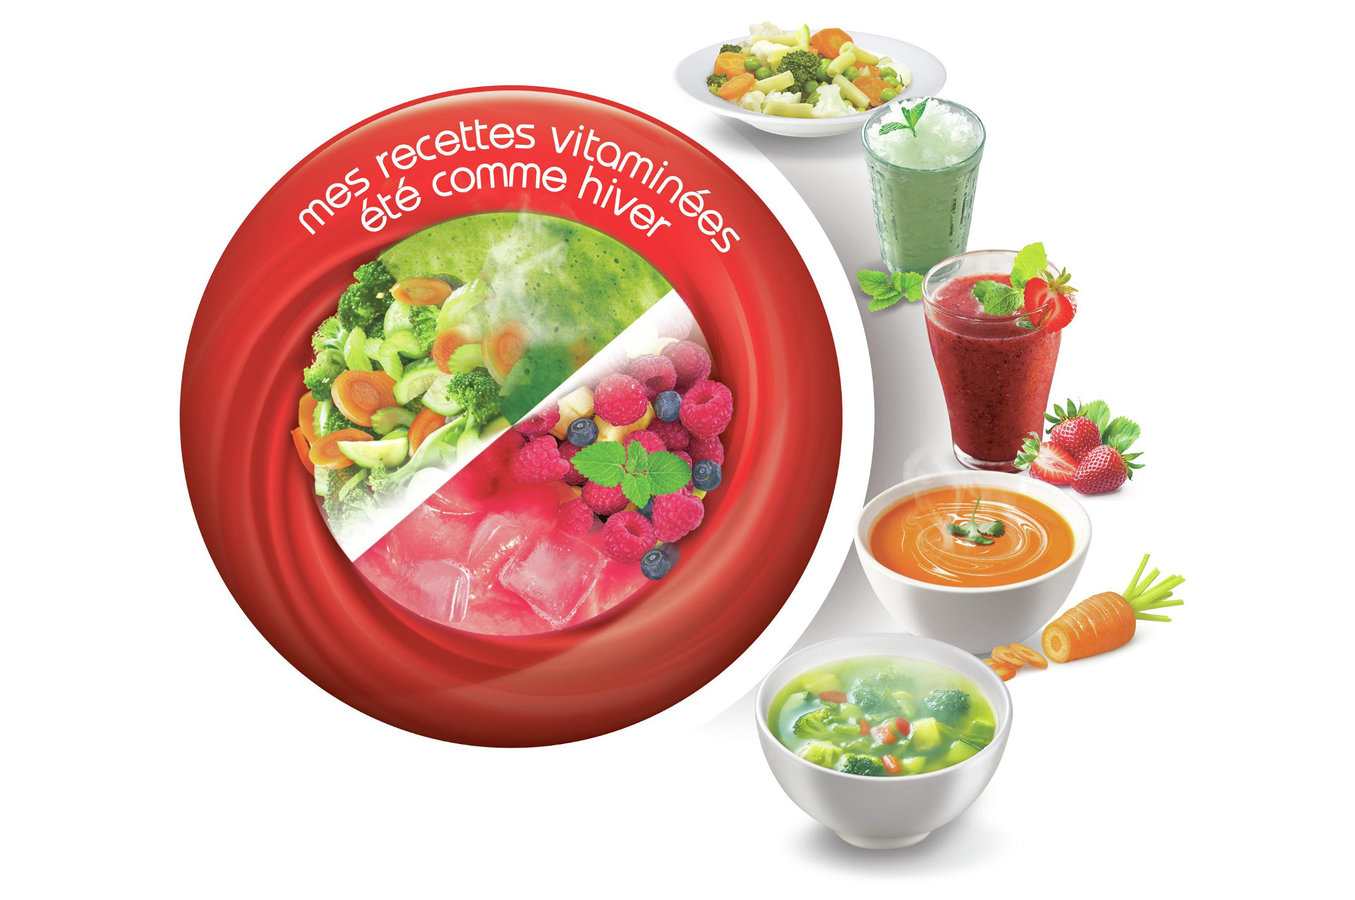 Blender moulinex lm908110 soup co lm908110 soup co 4266579 darty - Recette moulinex soup and co ...